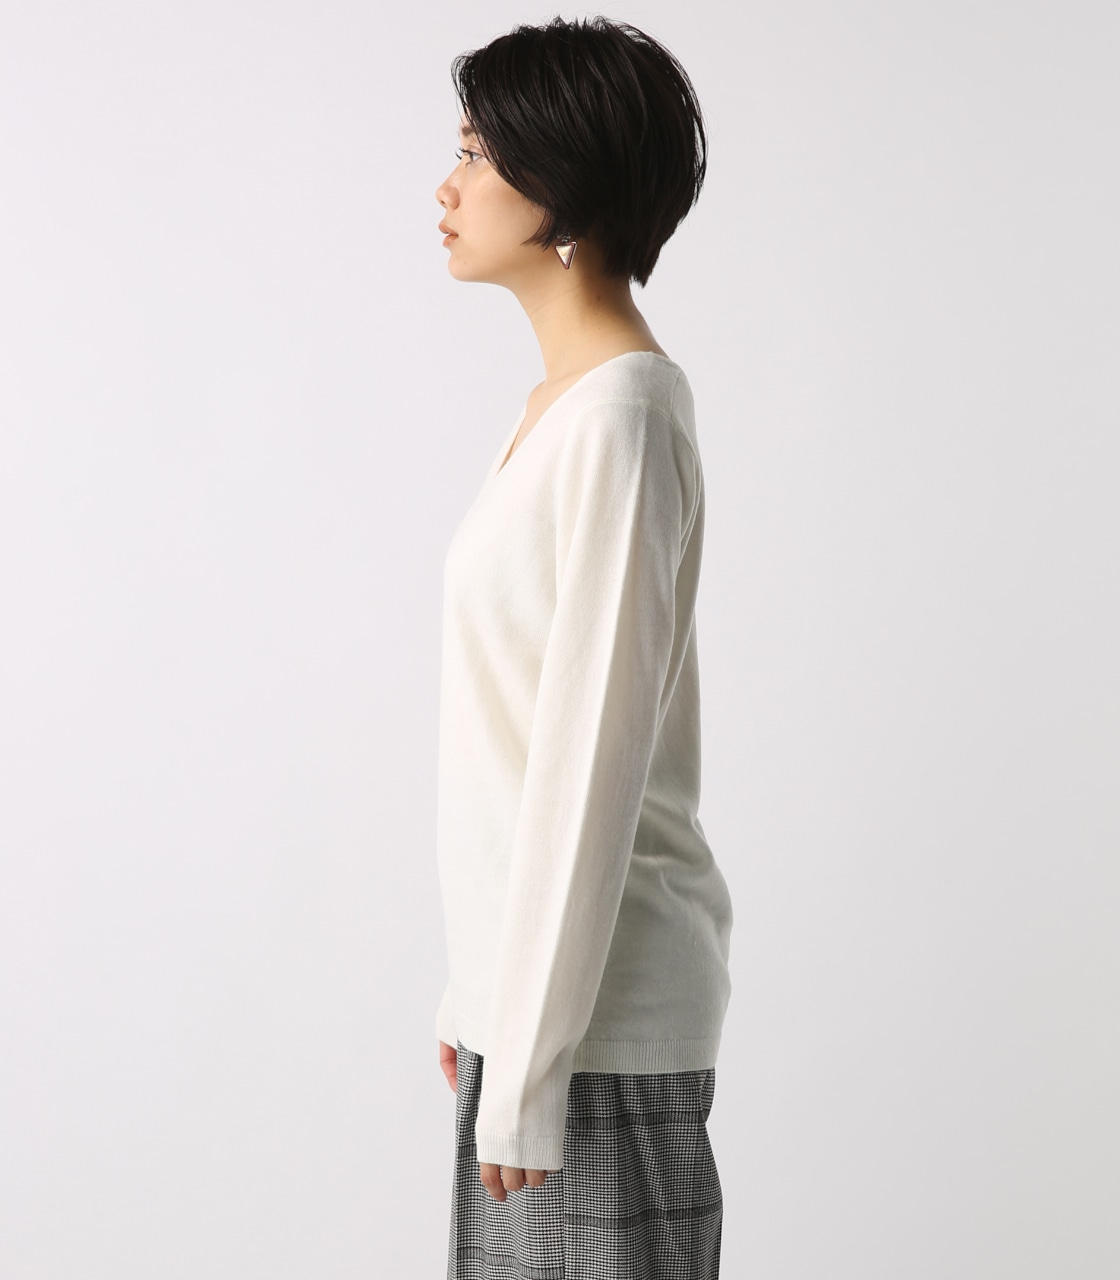 【AZUL BY MOUSSY】ウォッシャブルソフトタッチVネック長袖プルオーバー 詳細画像 O/WHT 6